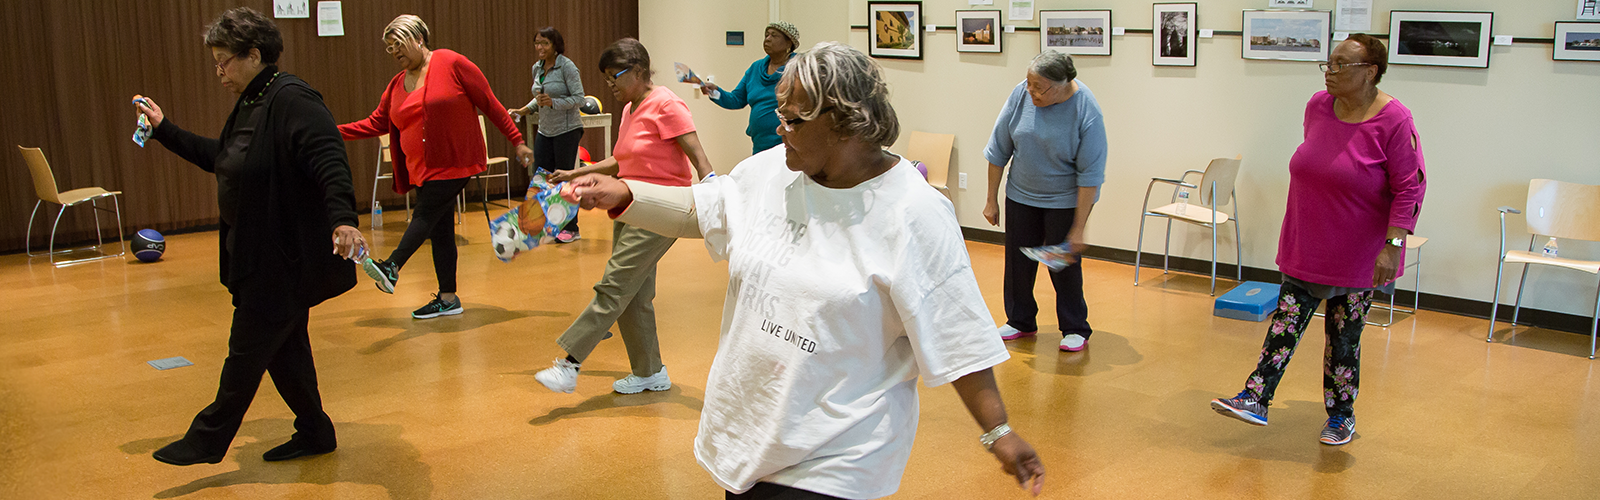 photo of older adults in a fall prevention program